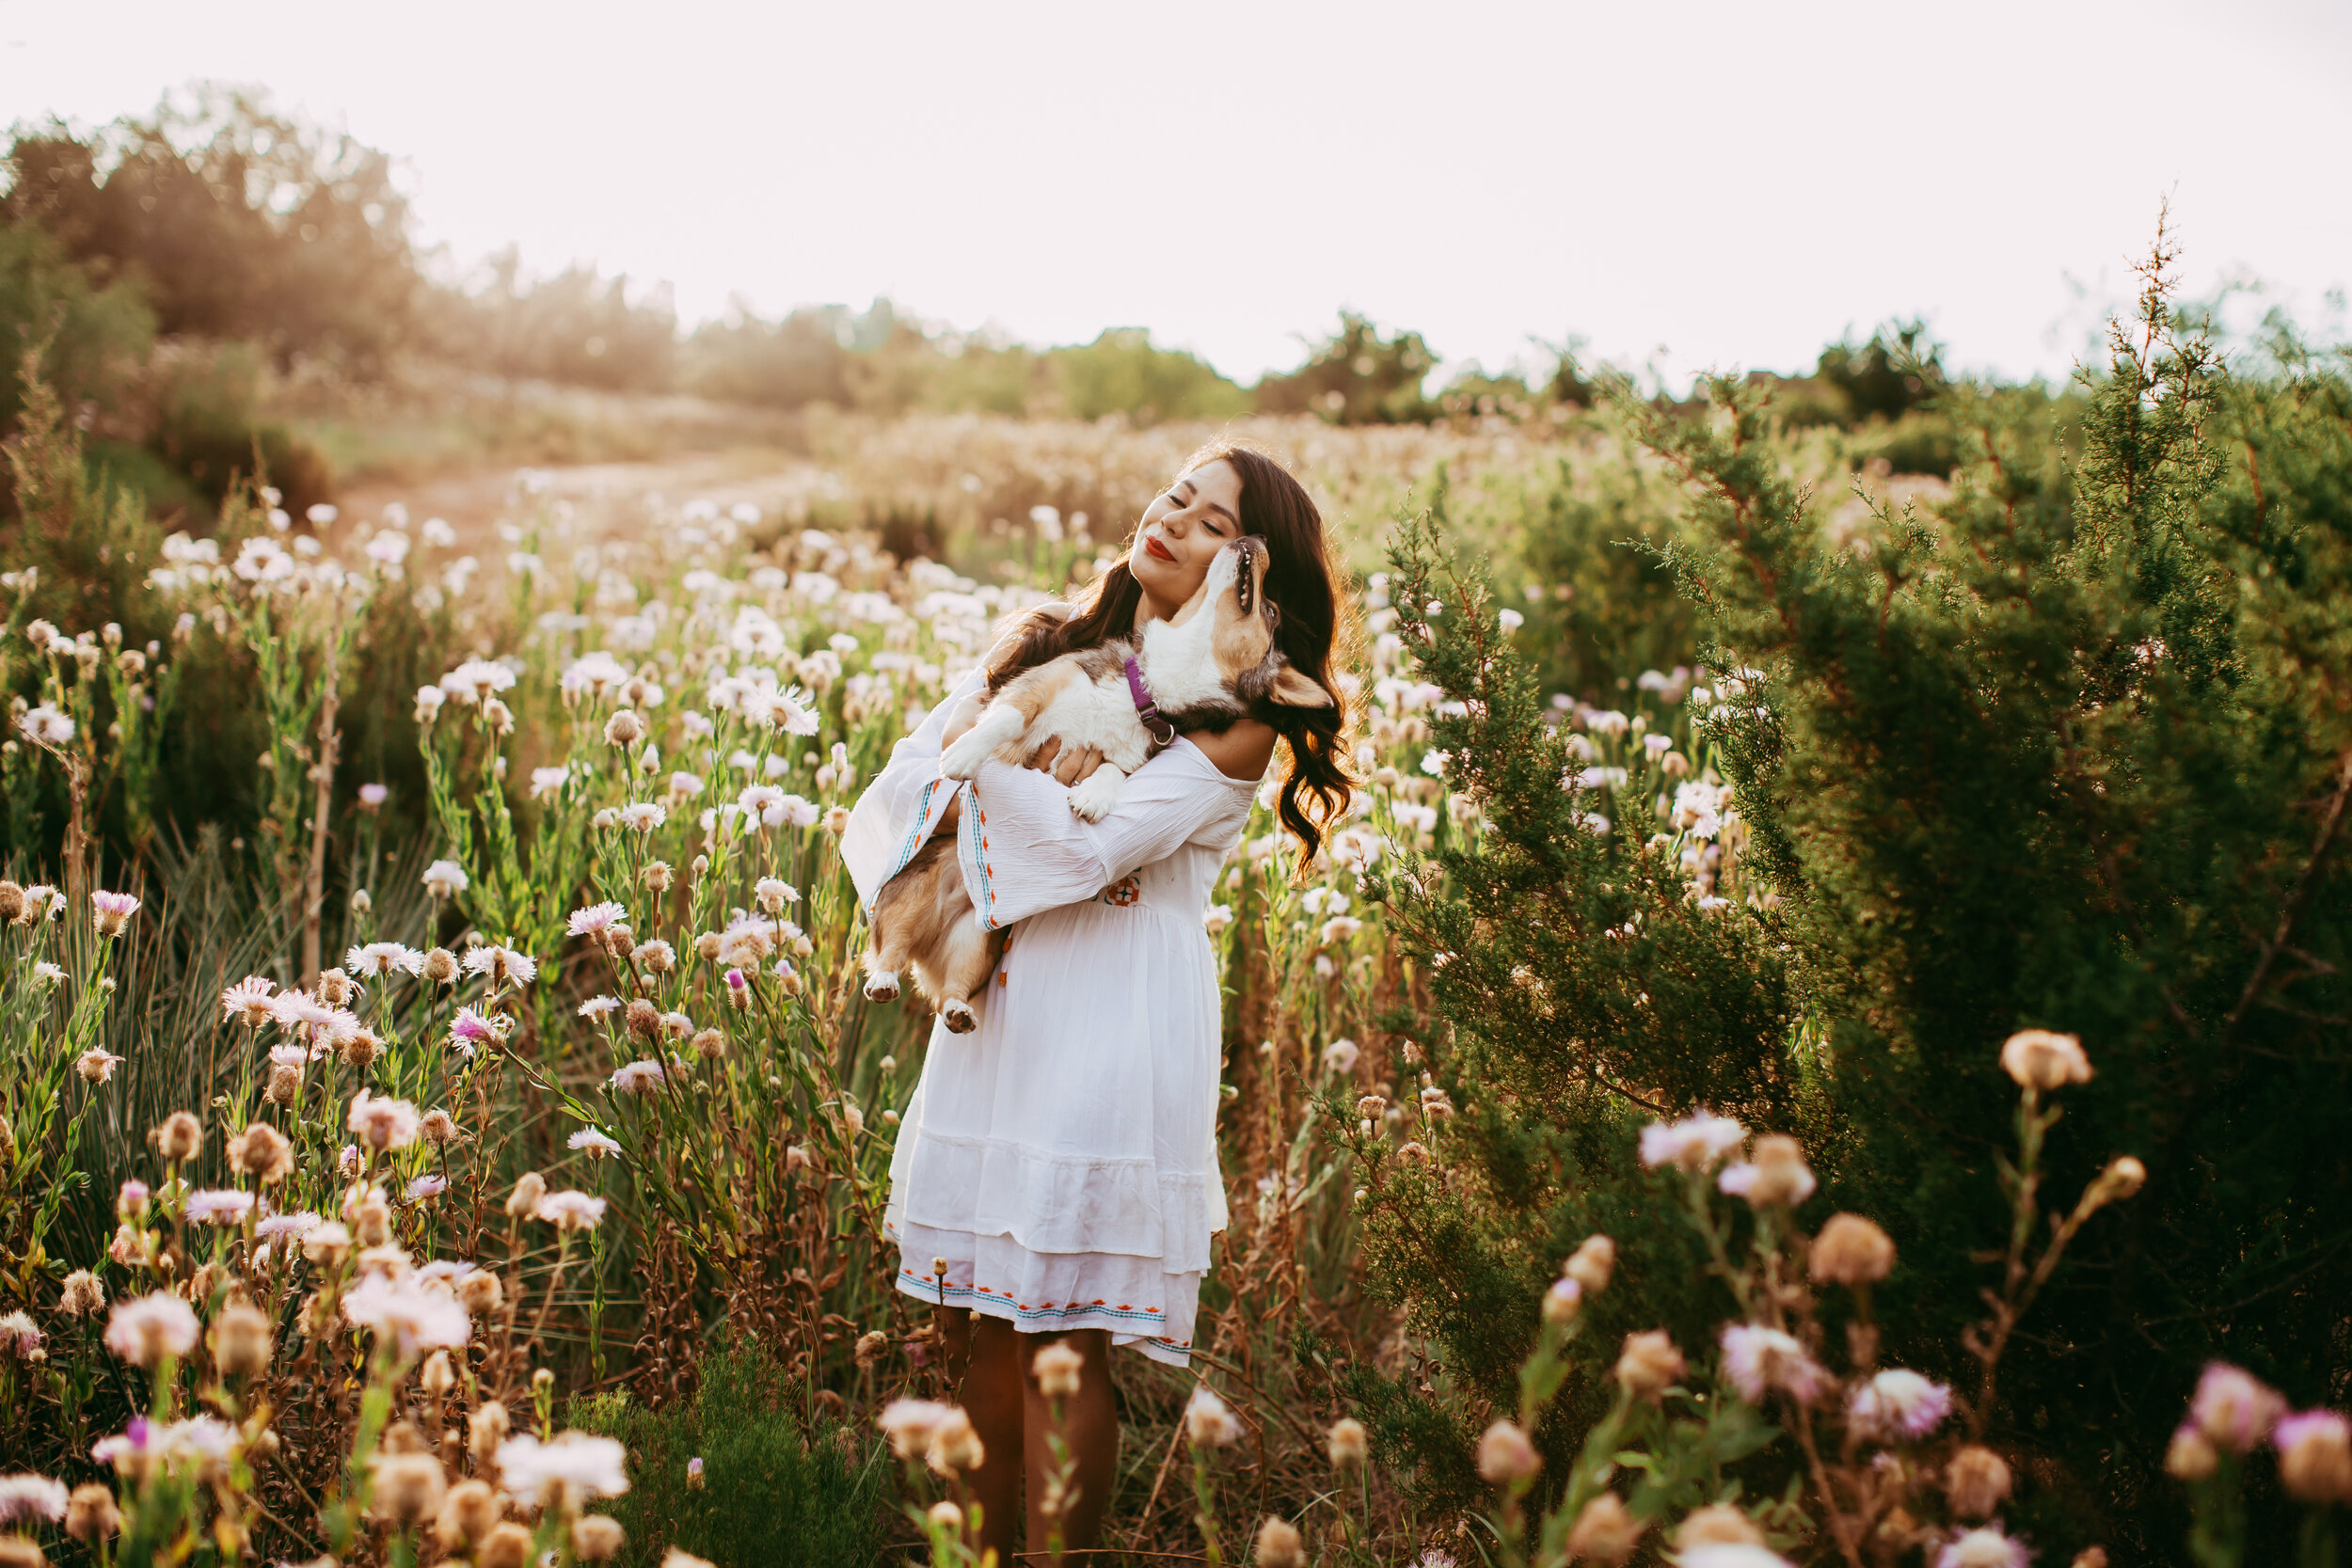 Holding puppy in a field of wildflowers. There's nothing better! #tealawardphotography #texasphotographer #amarillophotography #amarillophotographer #lifestylephotography #emotionalphotography #photoshoot #family #puppylove #purejoy #puppyphotos #lifestyleinteraction